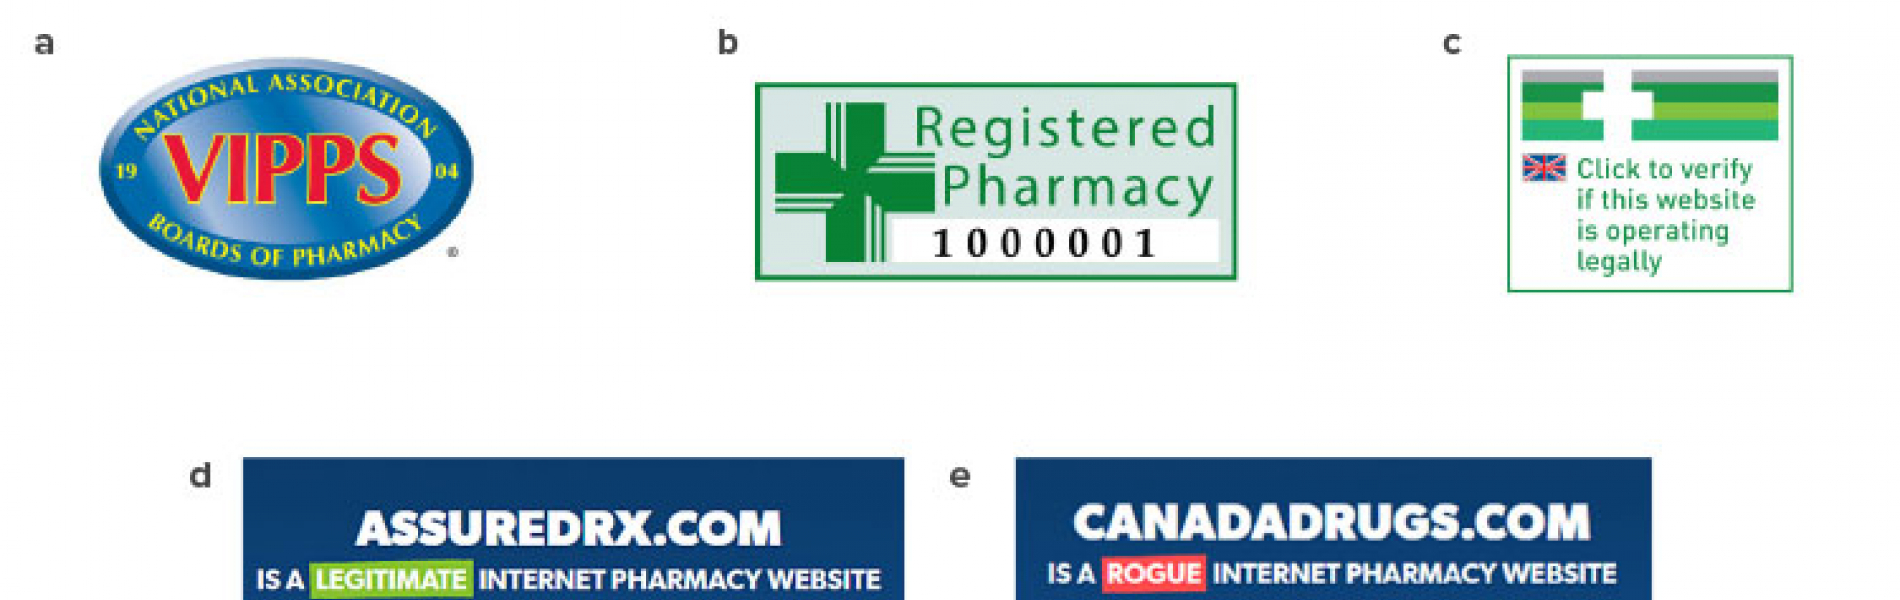 Accreditation organizations' systems to show online pharmacy legitimacy